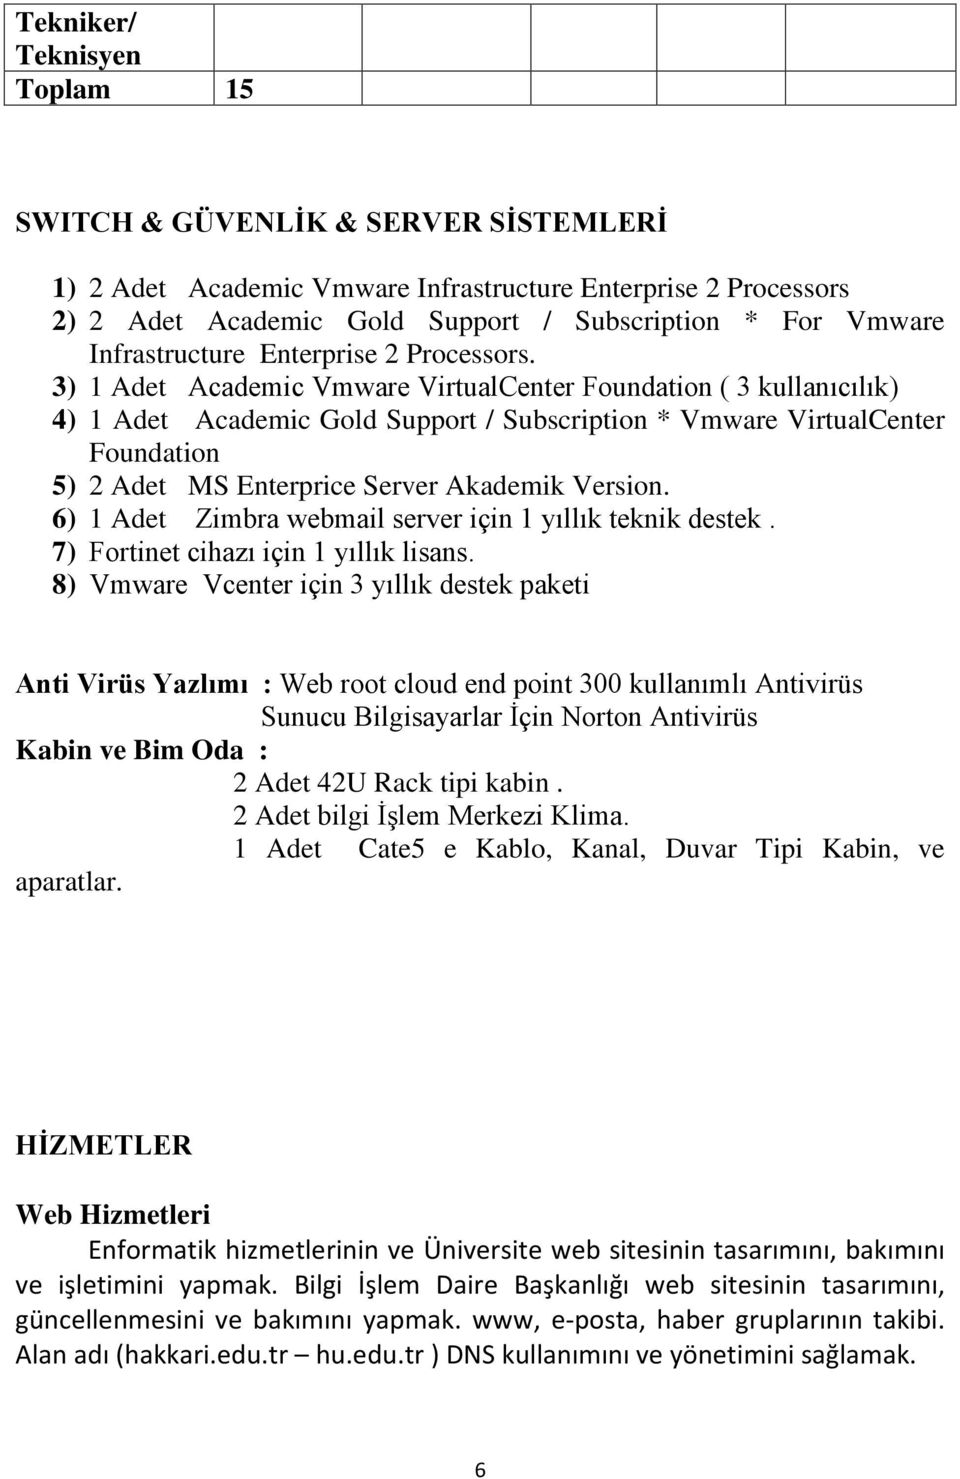 3) 1 Adet Academic Vmware VirtualCenter Foundation ( 3 kullanıcılık) 4) 1 Adet Academic Gold Support / Subscription * Vmware VirtualCenter Foundation 5) 2 Adet MS Enterprice Server Akademik Version.